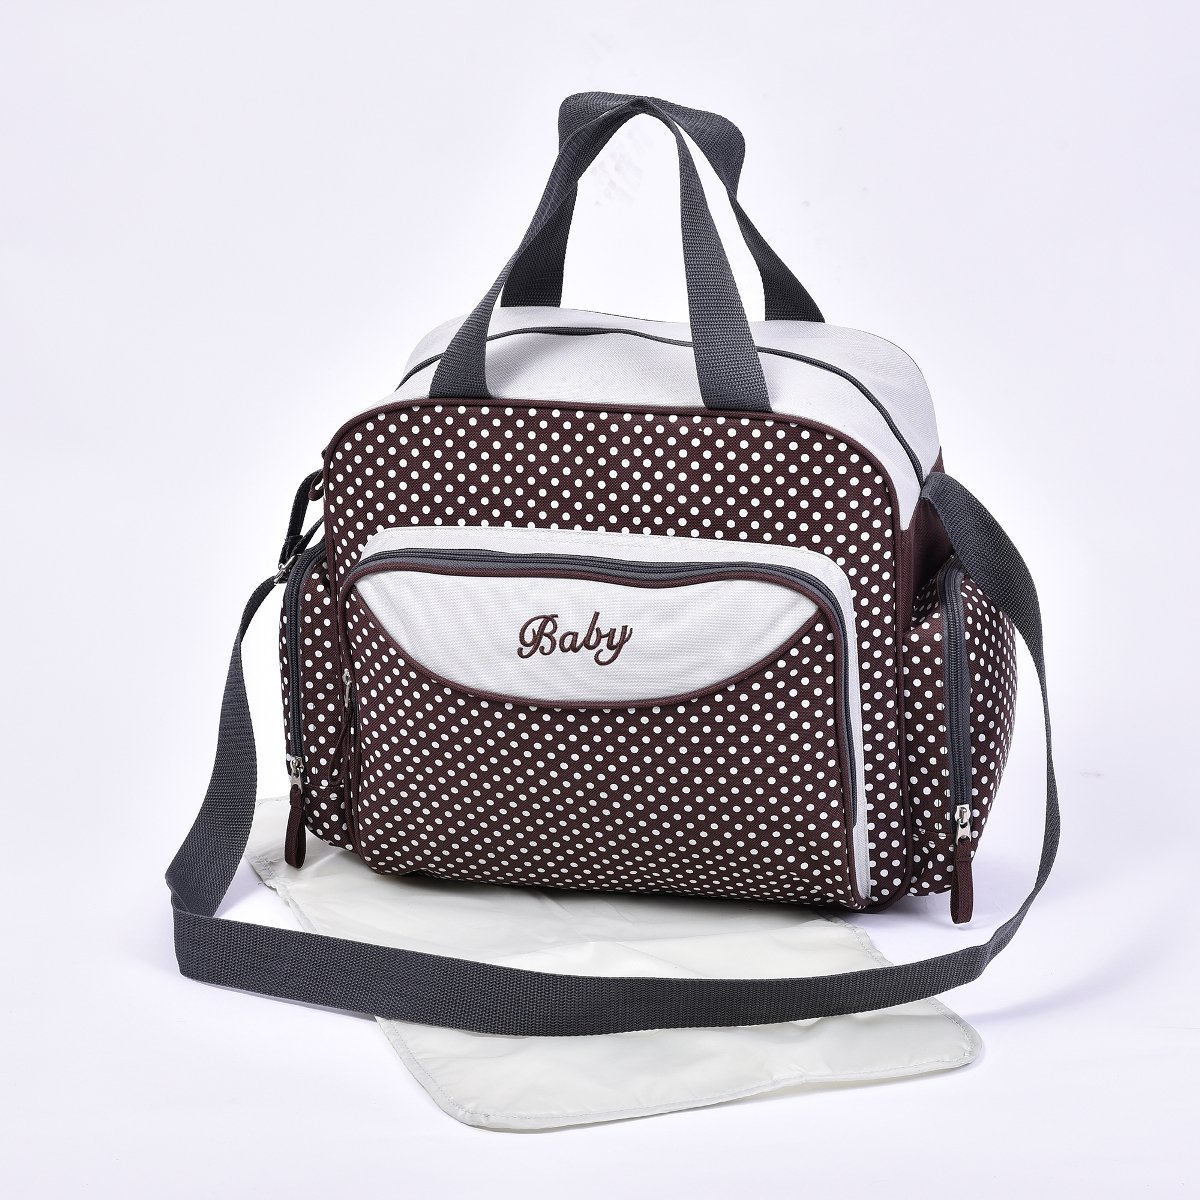 Baby Nappy Diaper Changing Bags Grey/Polka Dots Design 6600 (6600 Brown) just4baby